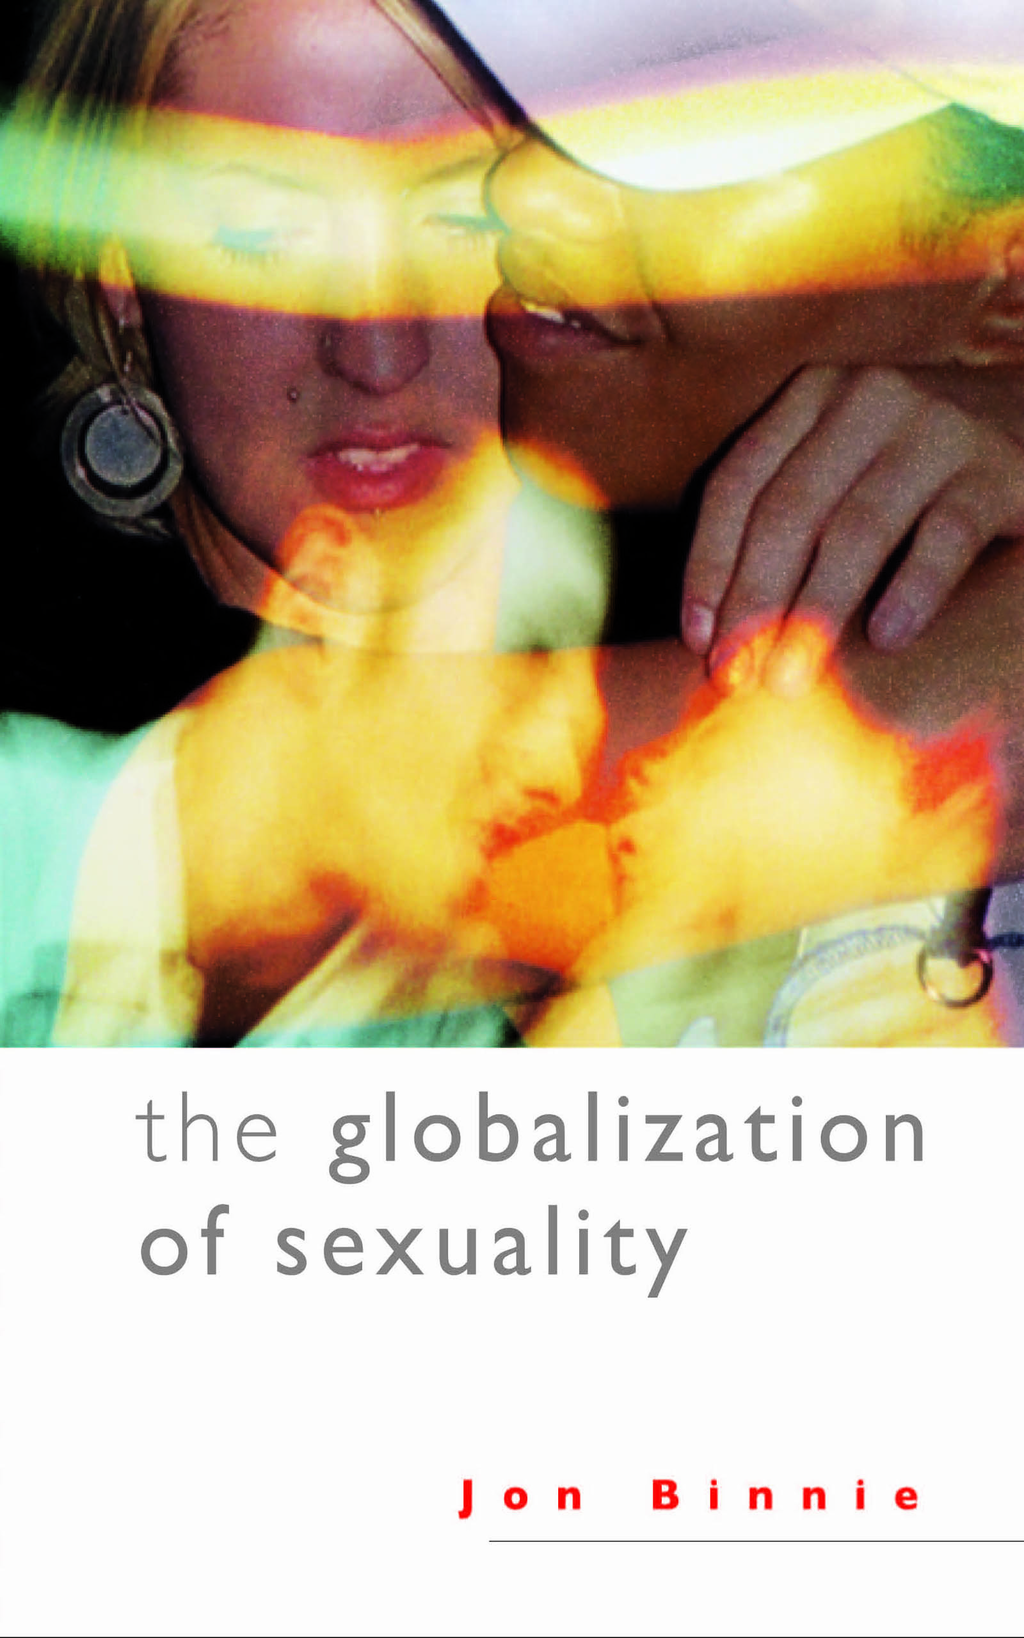 The Globalization of Sexuality